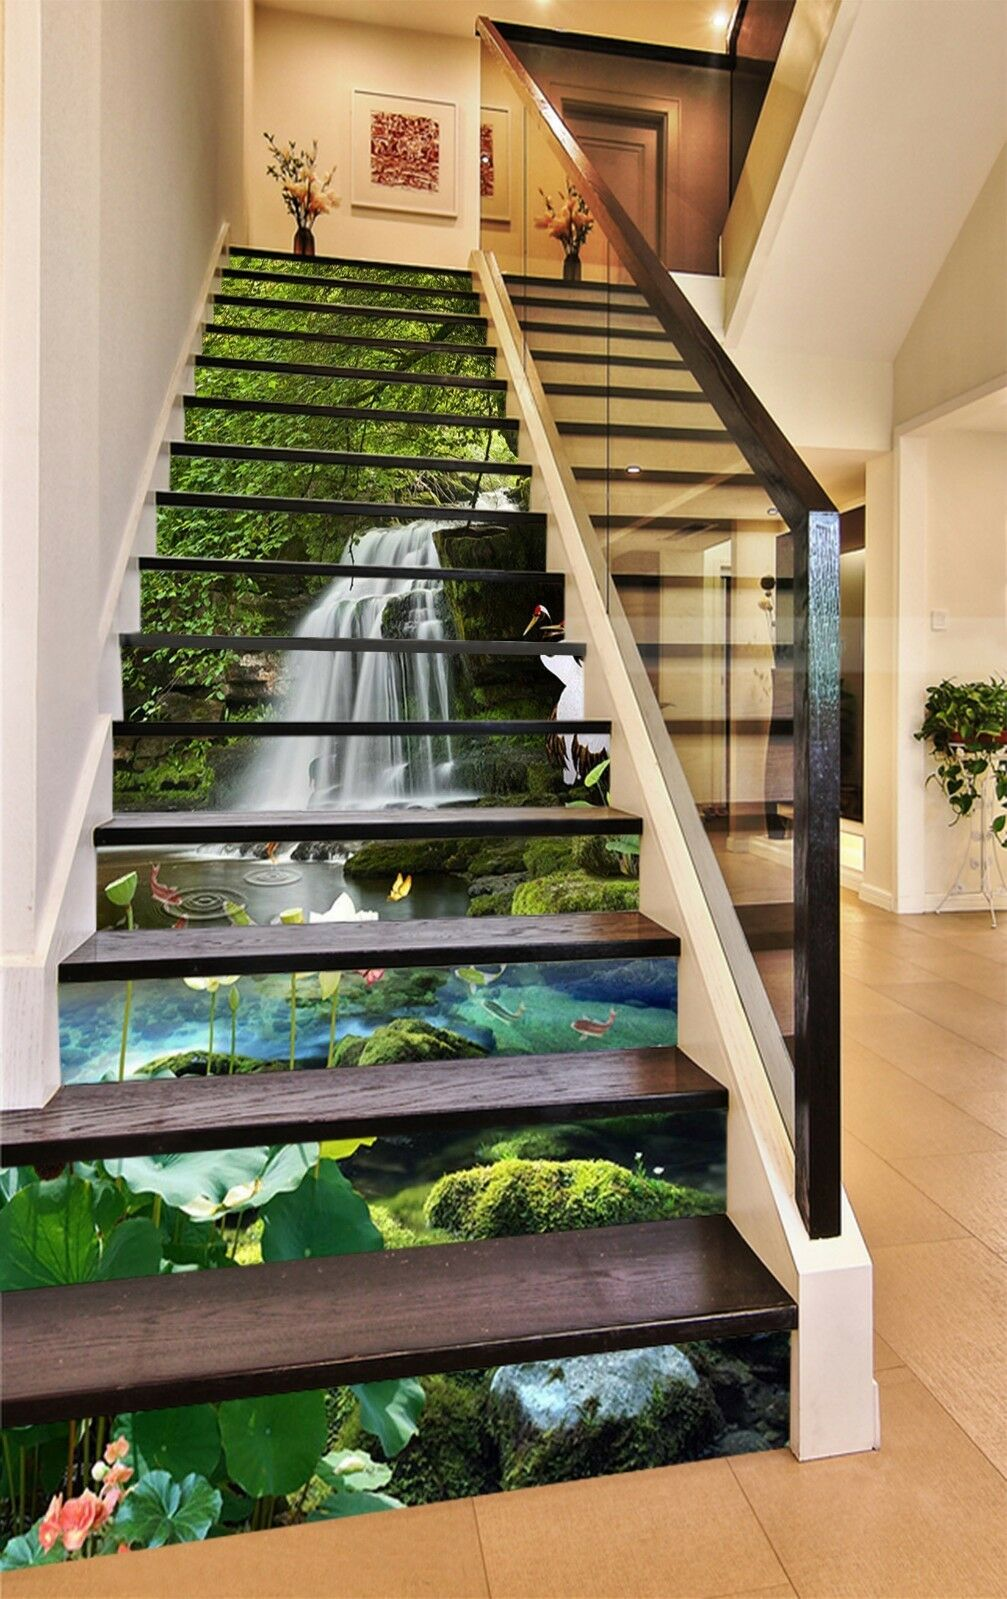 3D Water creek 37 Stair Risers Decoration Photo Mural Vinyl Decal Wallpaper UK